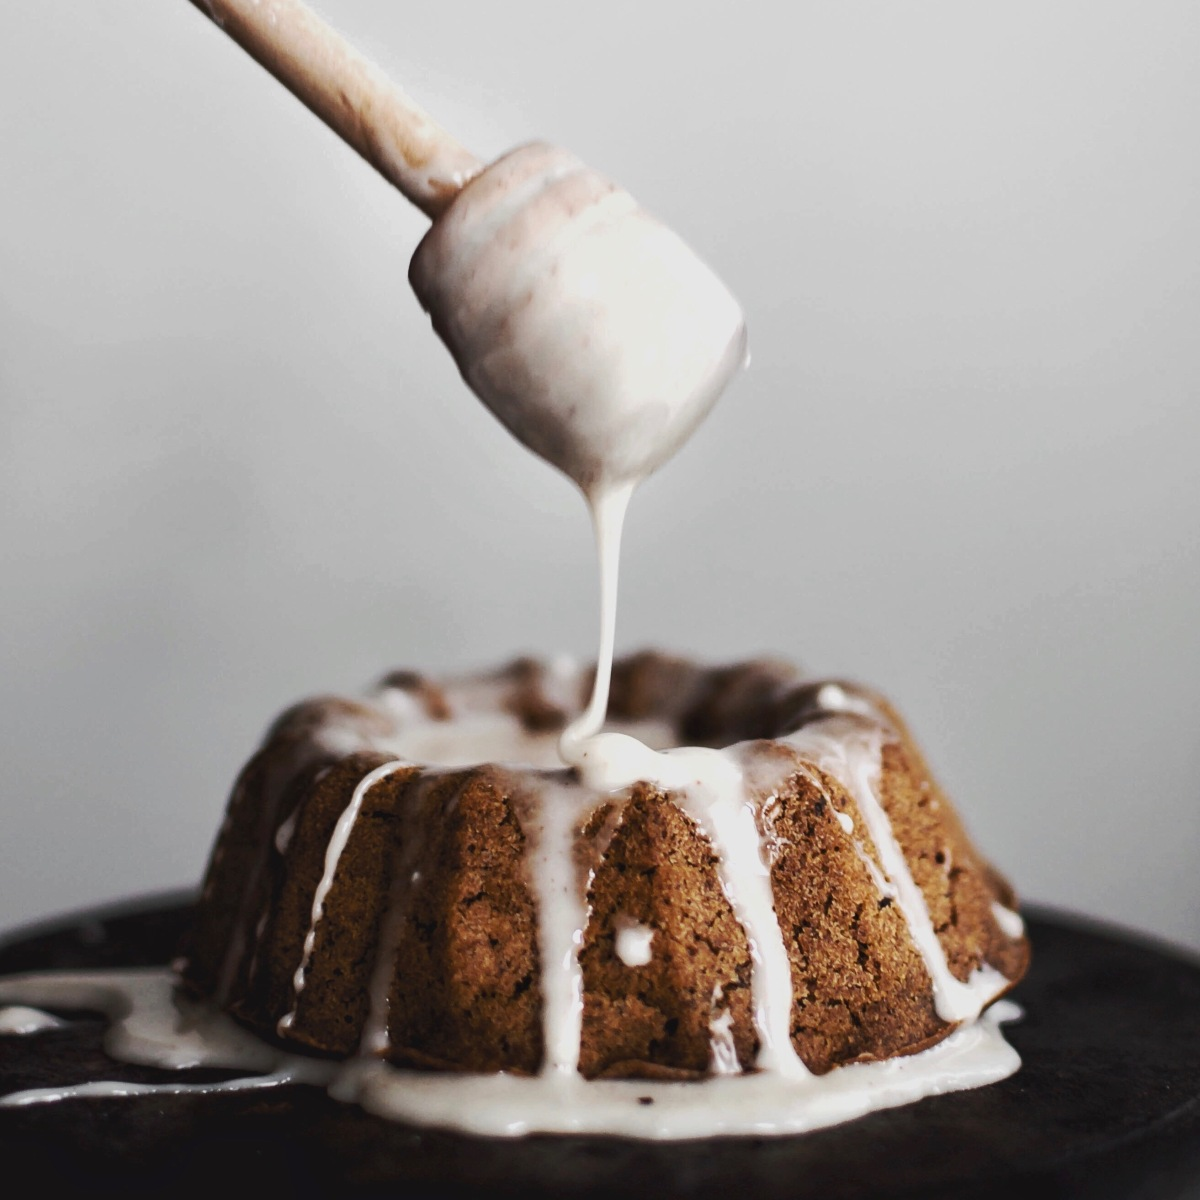 Mini Ginger-spiced Bundt Cakes